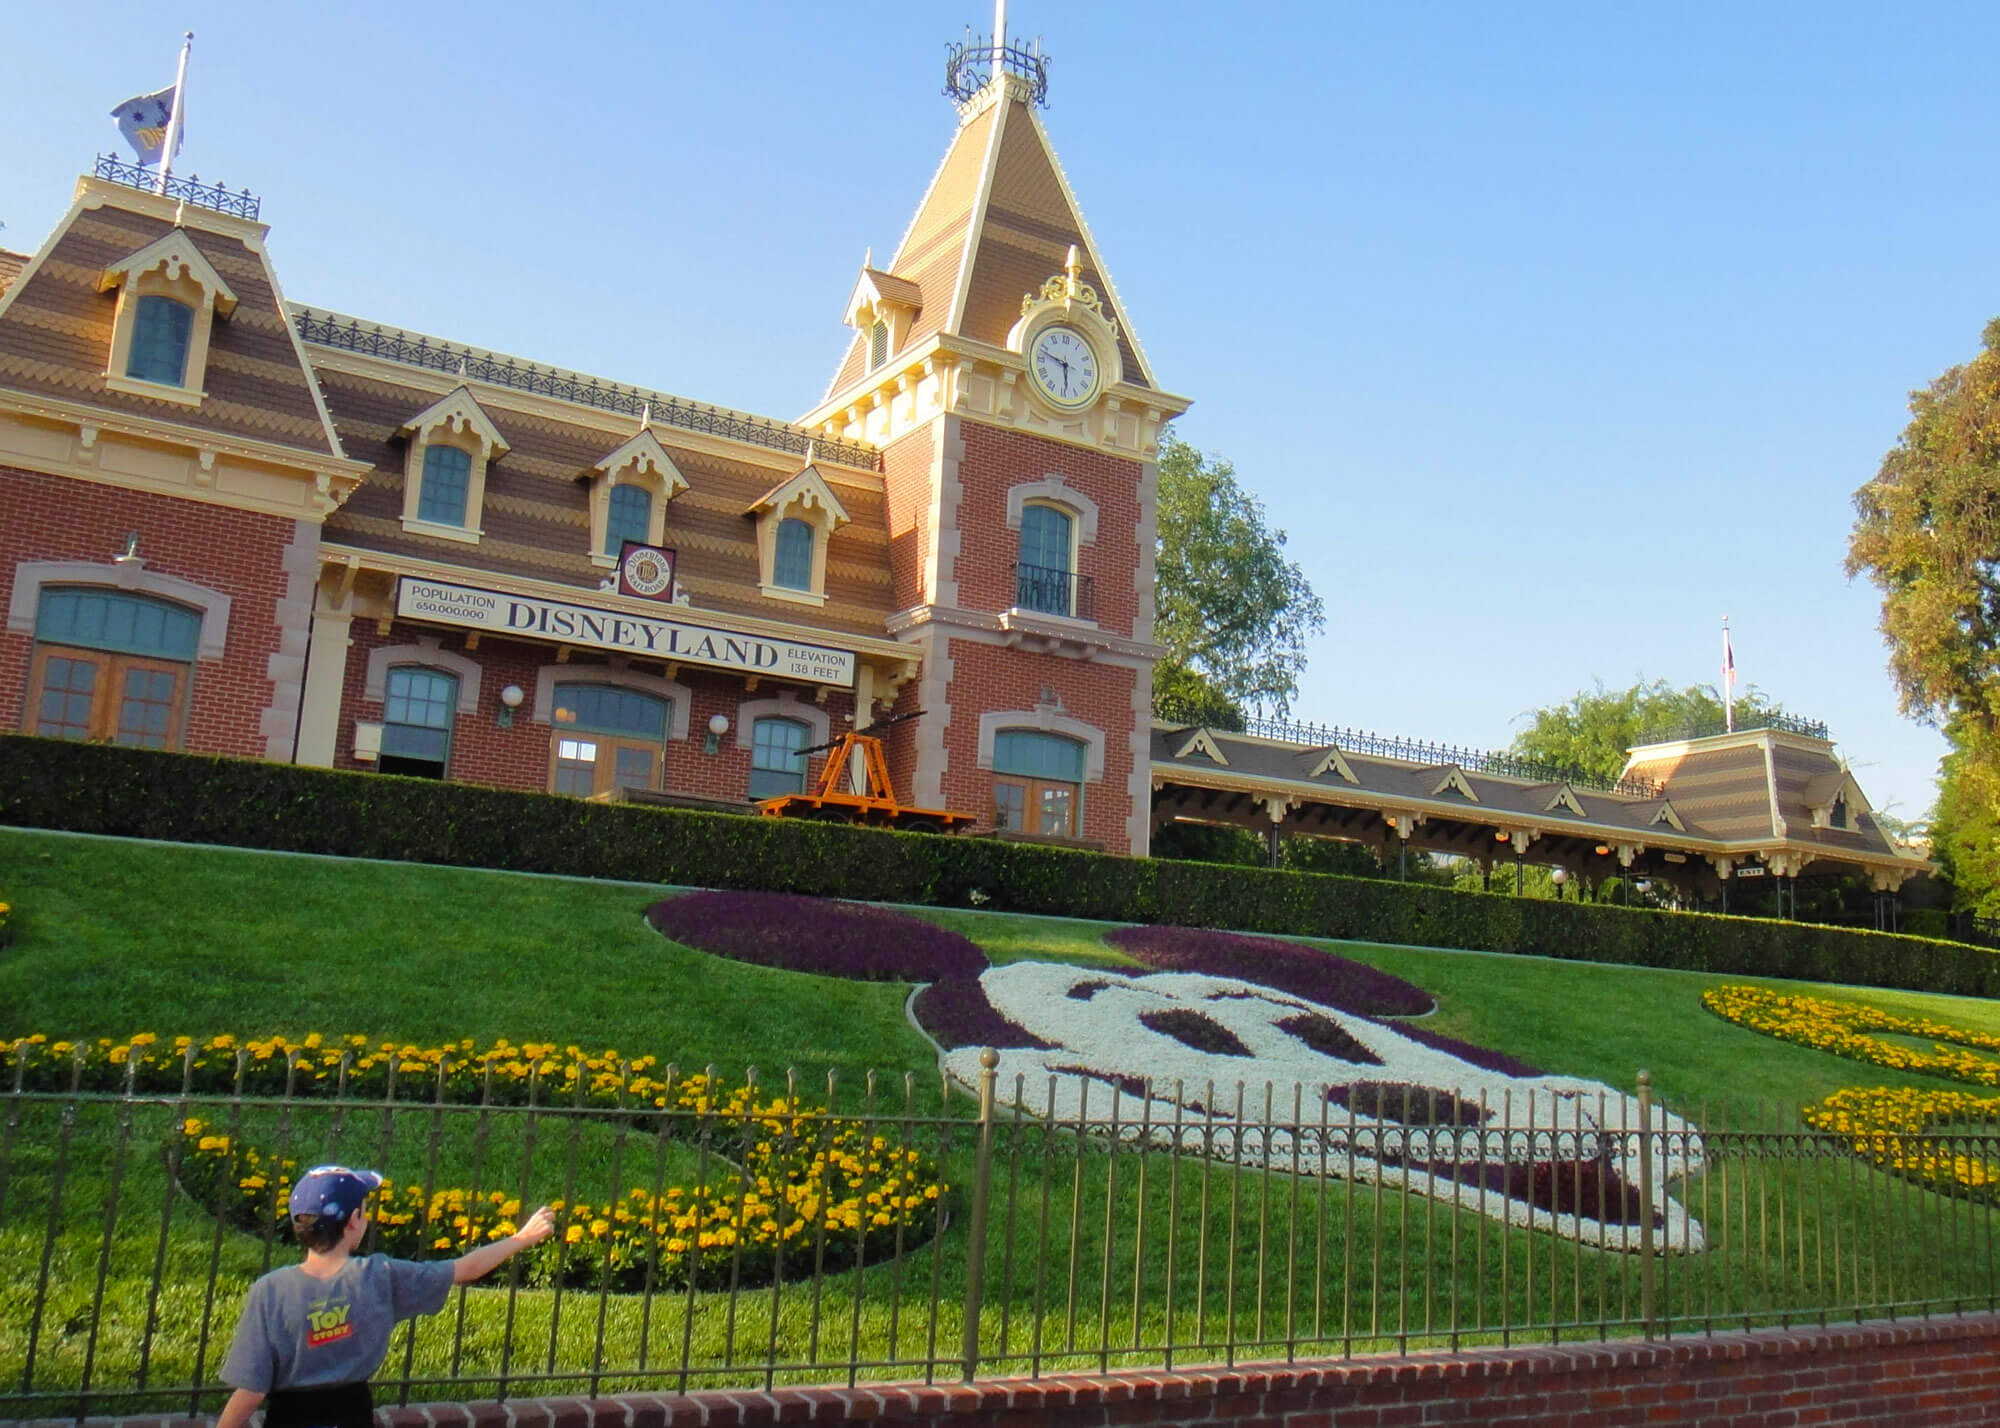 Hotels Near Disneyland in Los Angeles, CA with Reviews